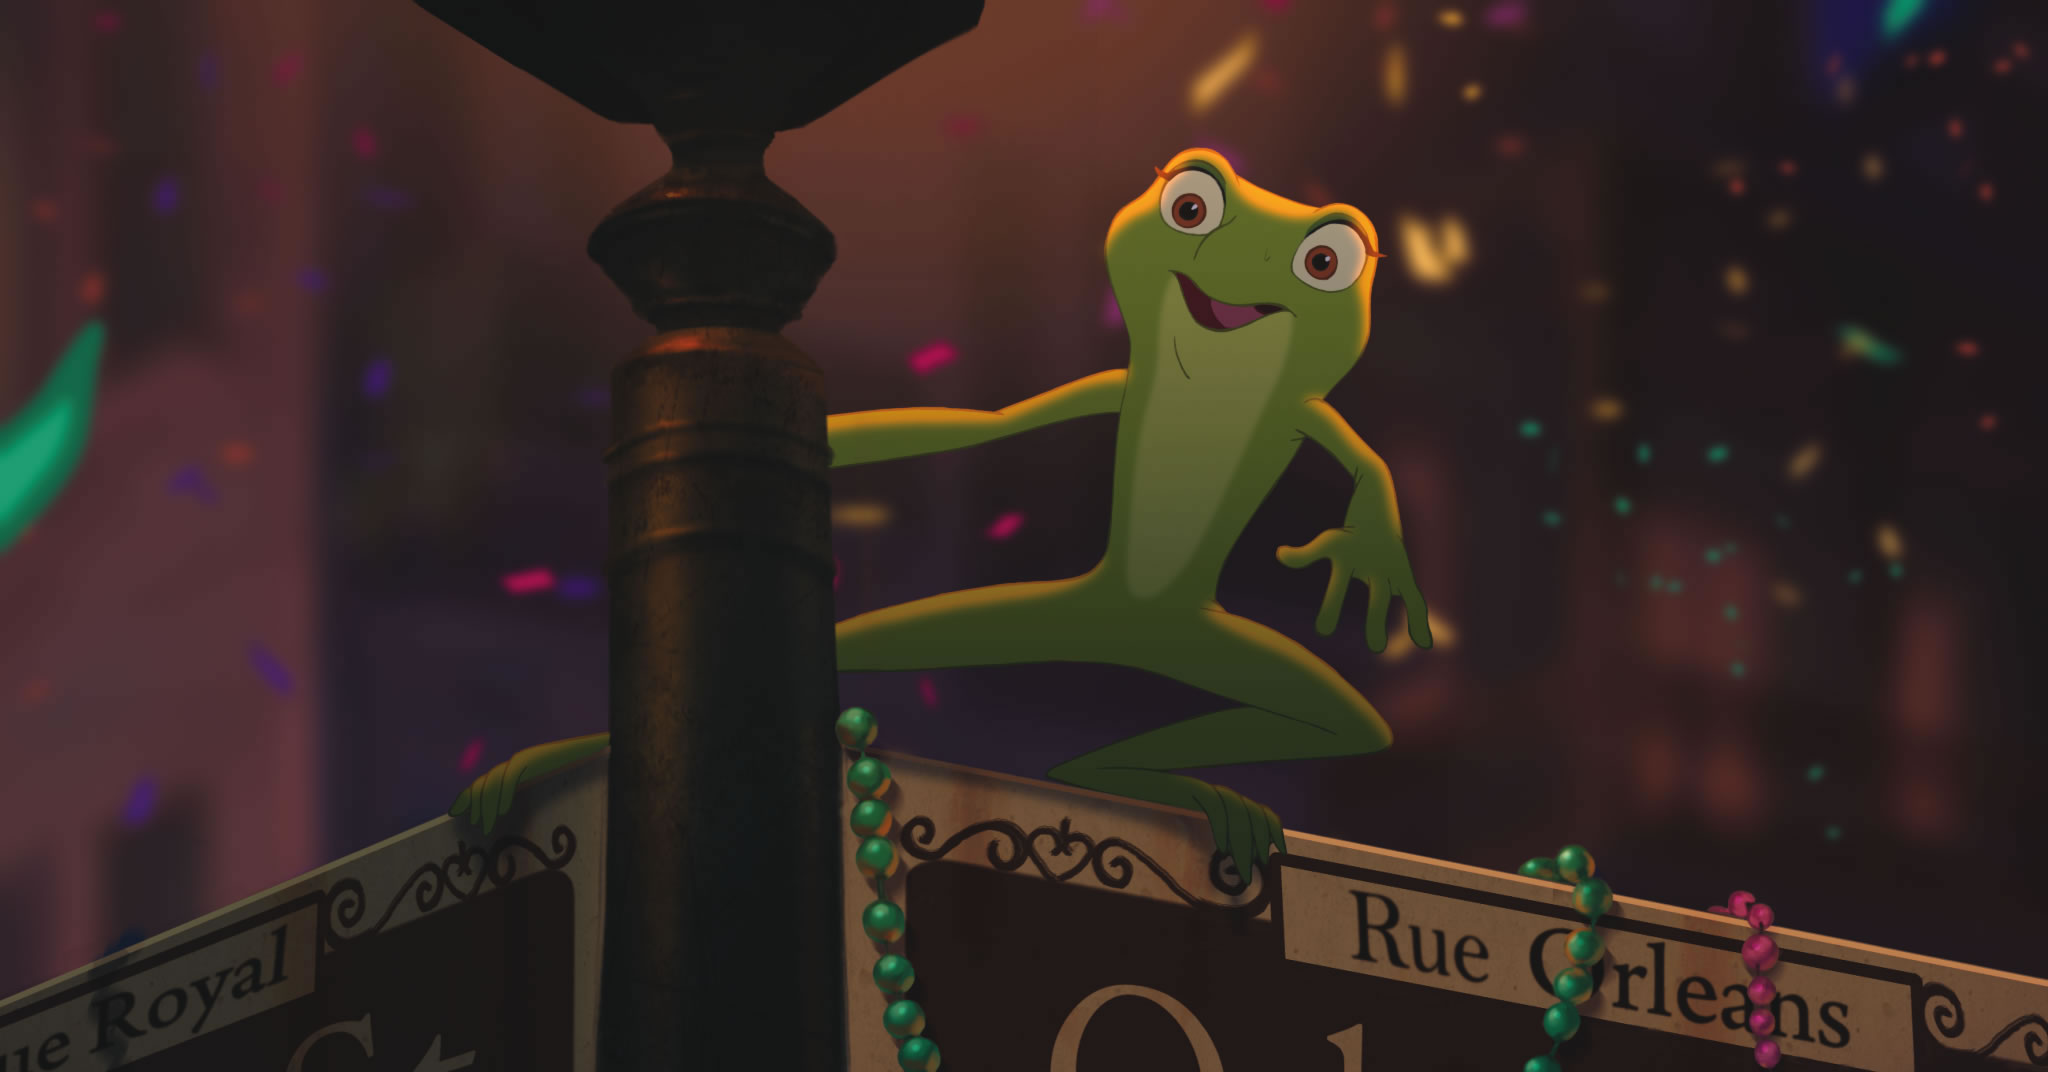 Tiana The Frog From Disney S Princess And The Frog Desktop Wallpaper